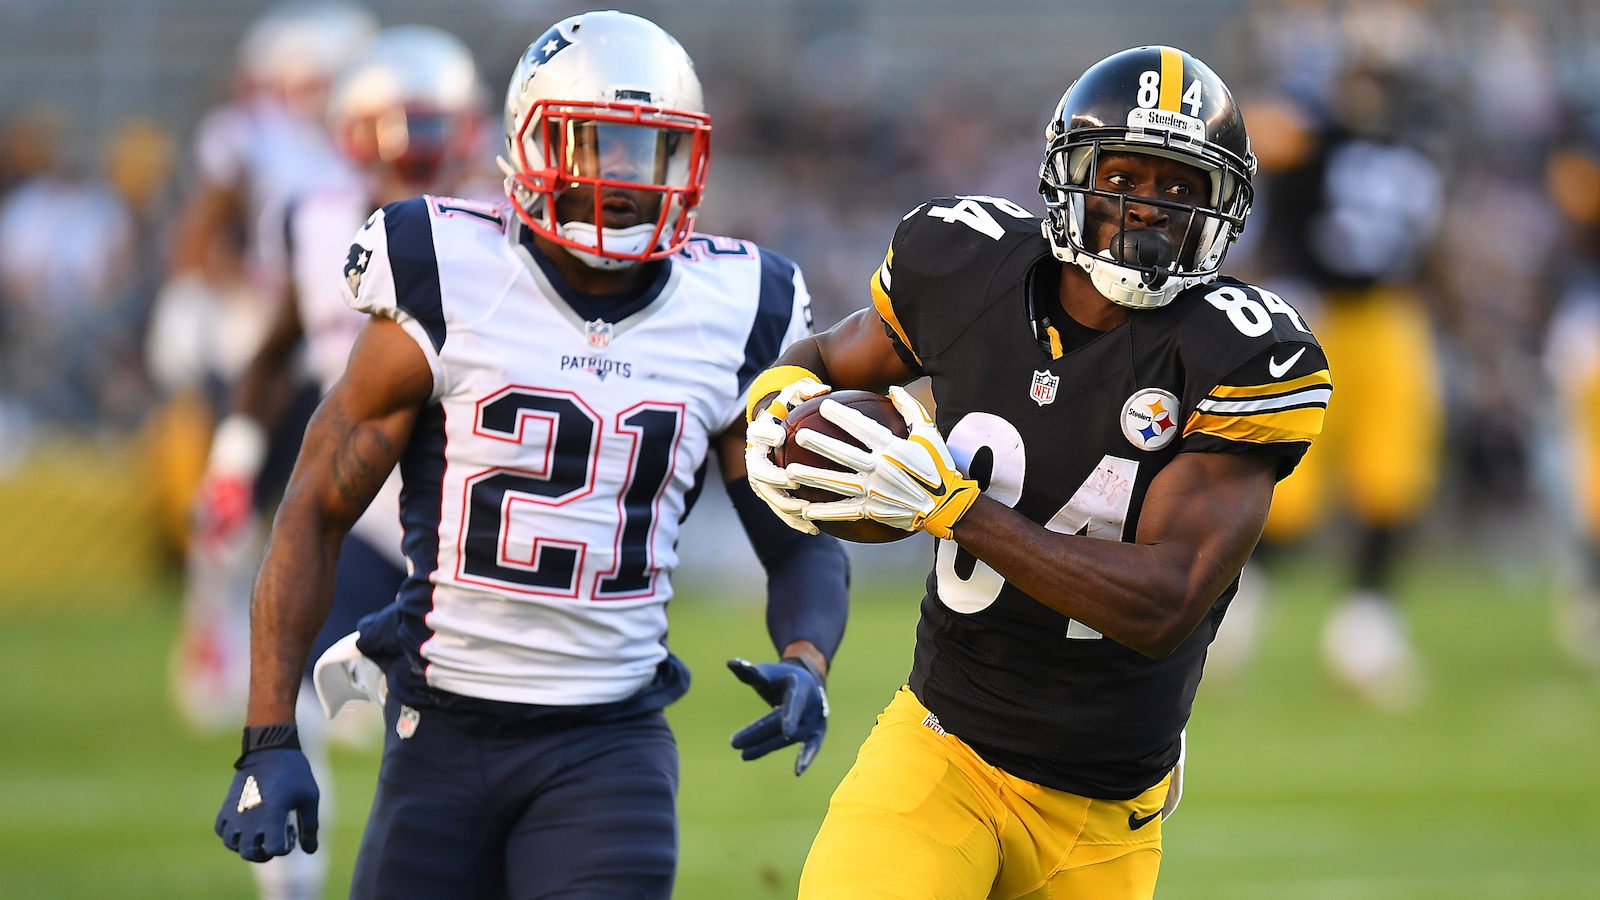 PITTSBURGH, PA - OCTOBER 23:  Antonio Brown #84 of the Pittsburgh Steelers is pursued by Malcolm Butler #21 of the New England Patriots after making a catch in the first half during the game at Heinz Field on October 23, 2016 in Pittsburgh, Pennsylvania. (Photo by Joe Sargent/Getty Images)